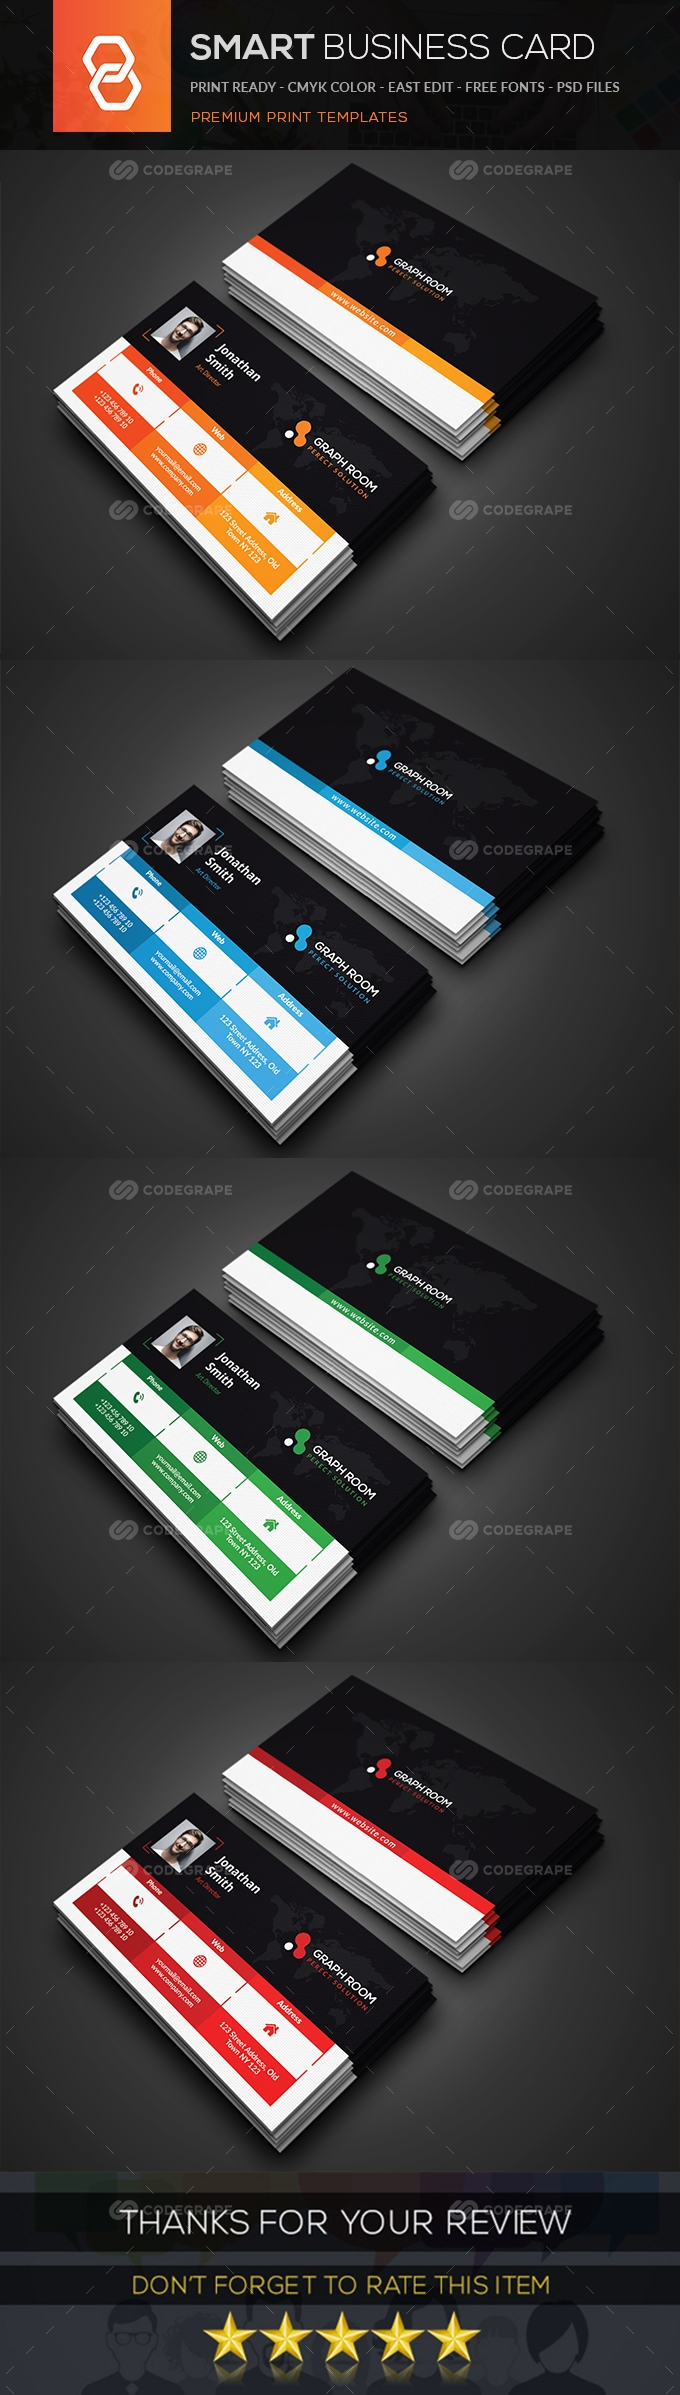 Smart Business Card